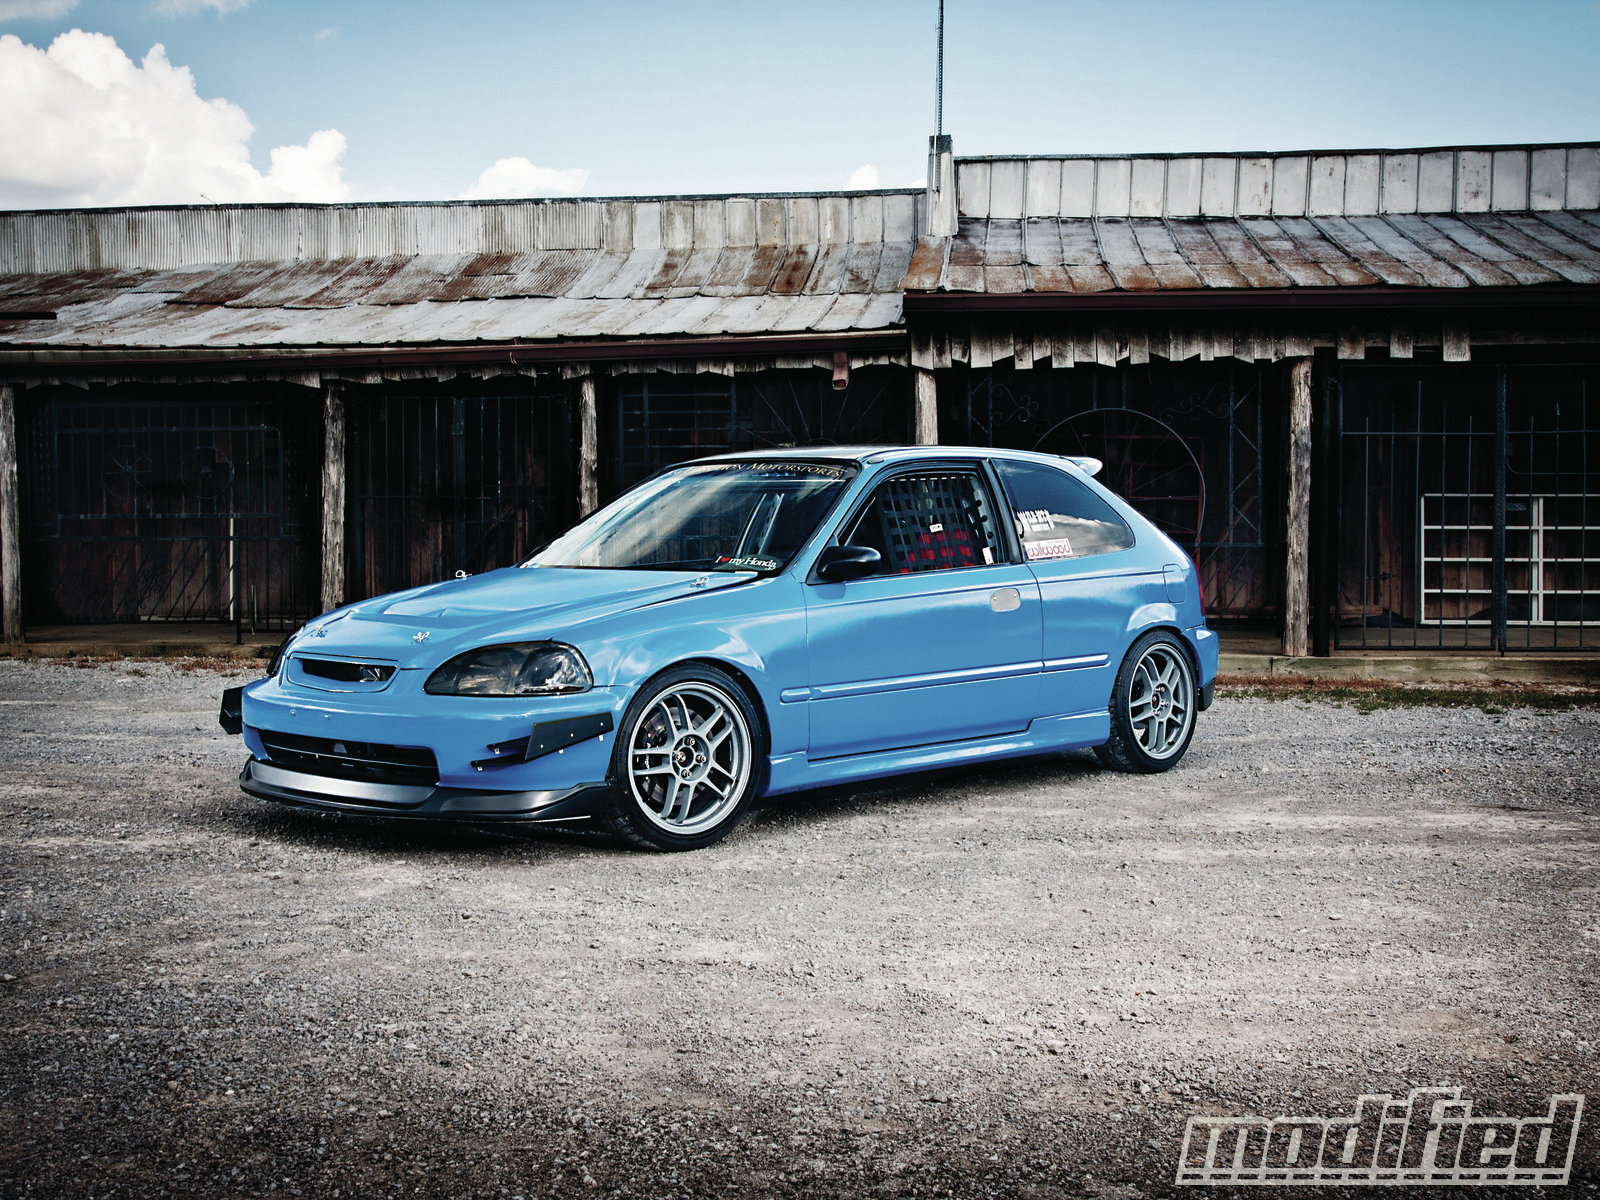 1996 Honda Civic Brian Bullock Modified Magazine